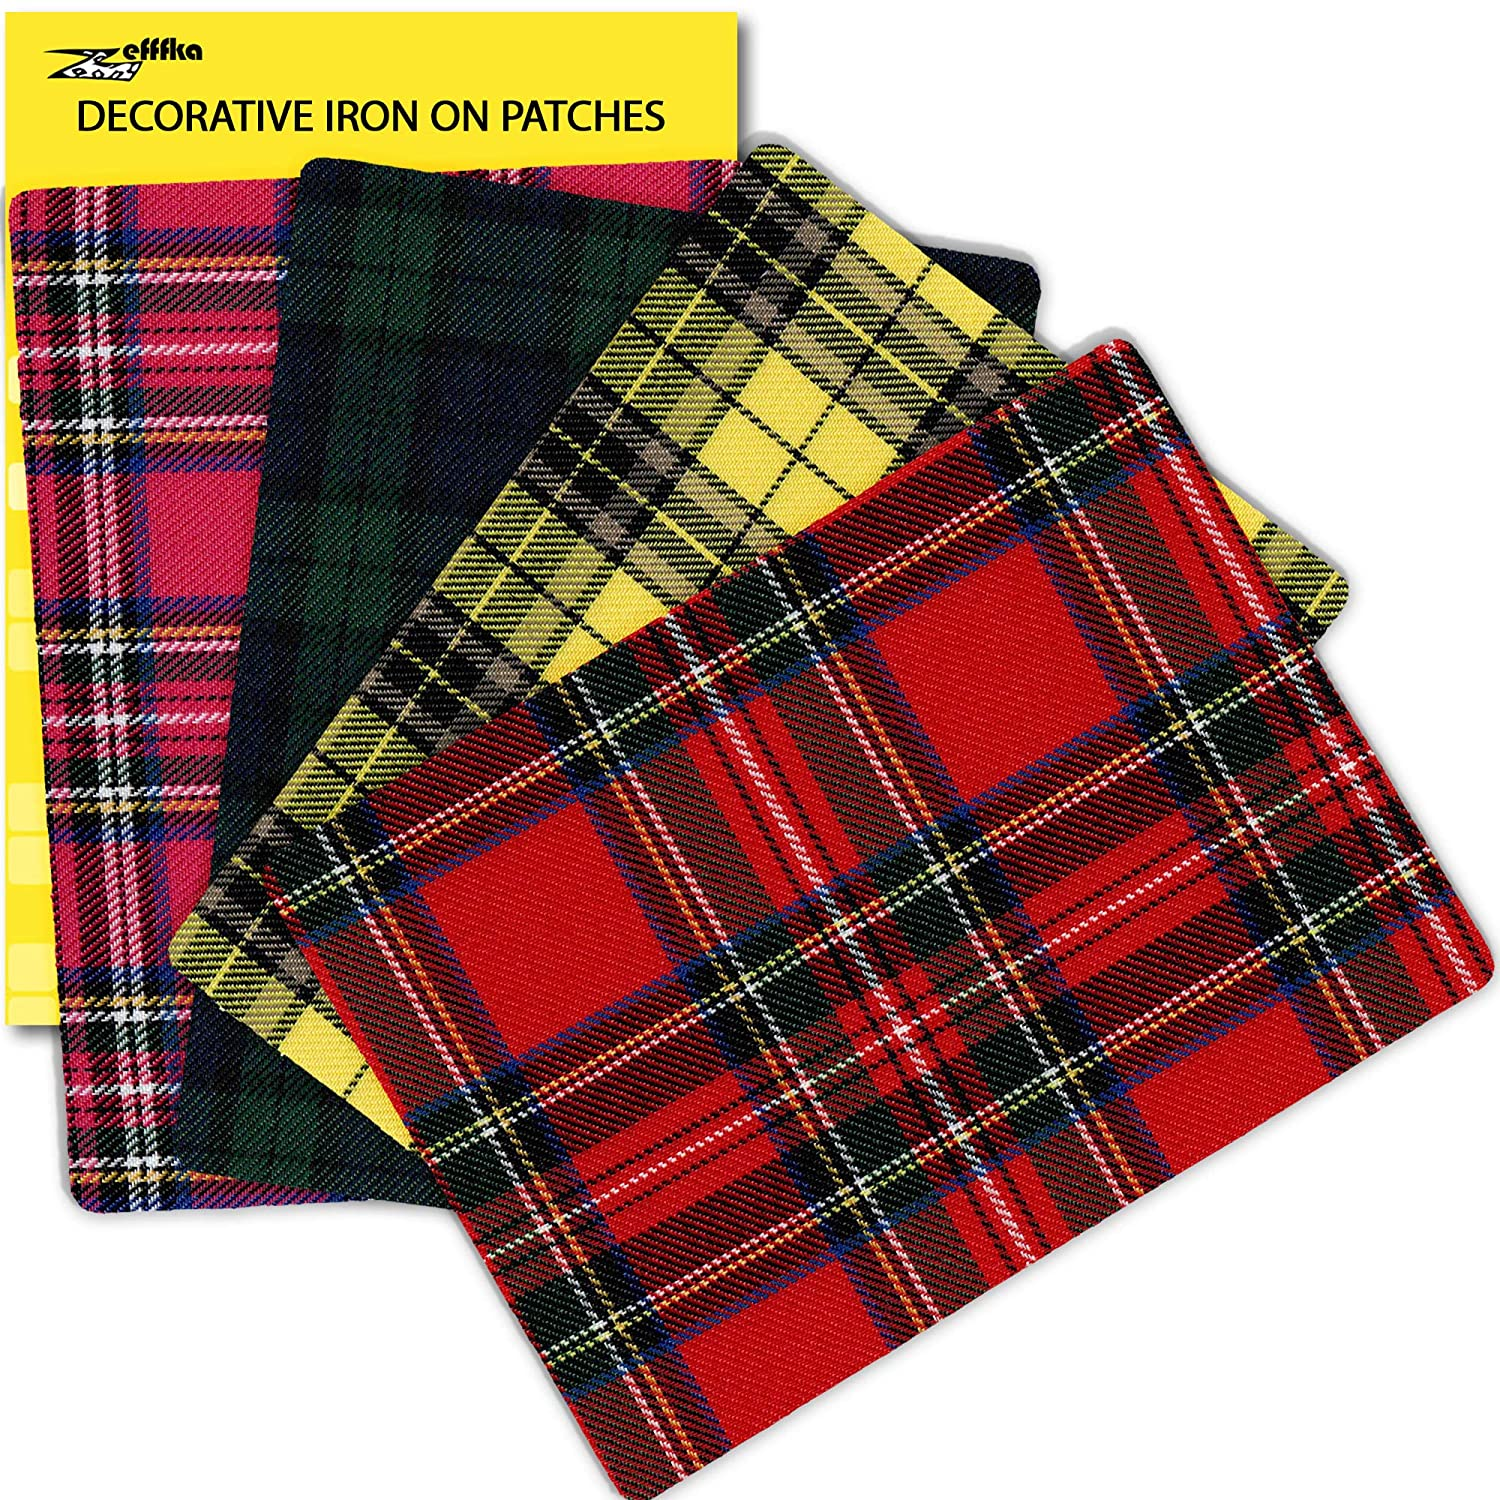 ZEFFFKA Premium Quality Plaid Fabric Textile Decorative Iron on Patches Modern Cool Design 4 Pieces 100/% Cotton Repair Kit for Jeans or Other Garment 5 by 7